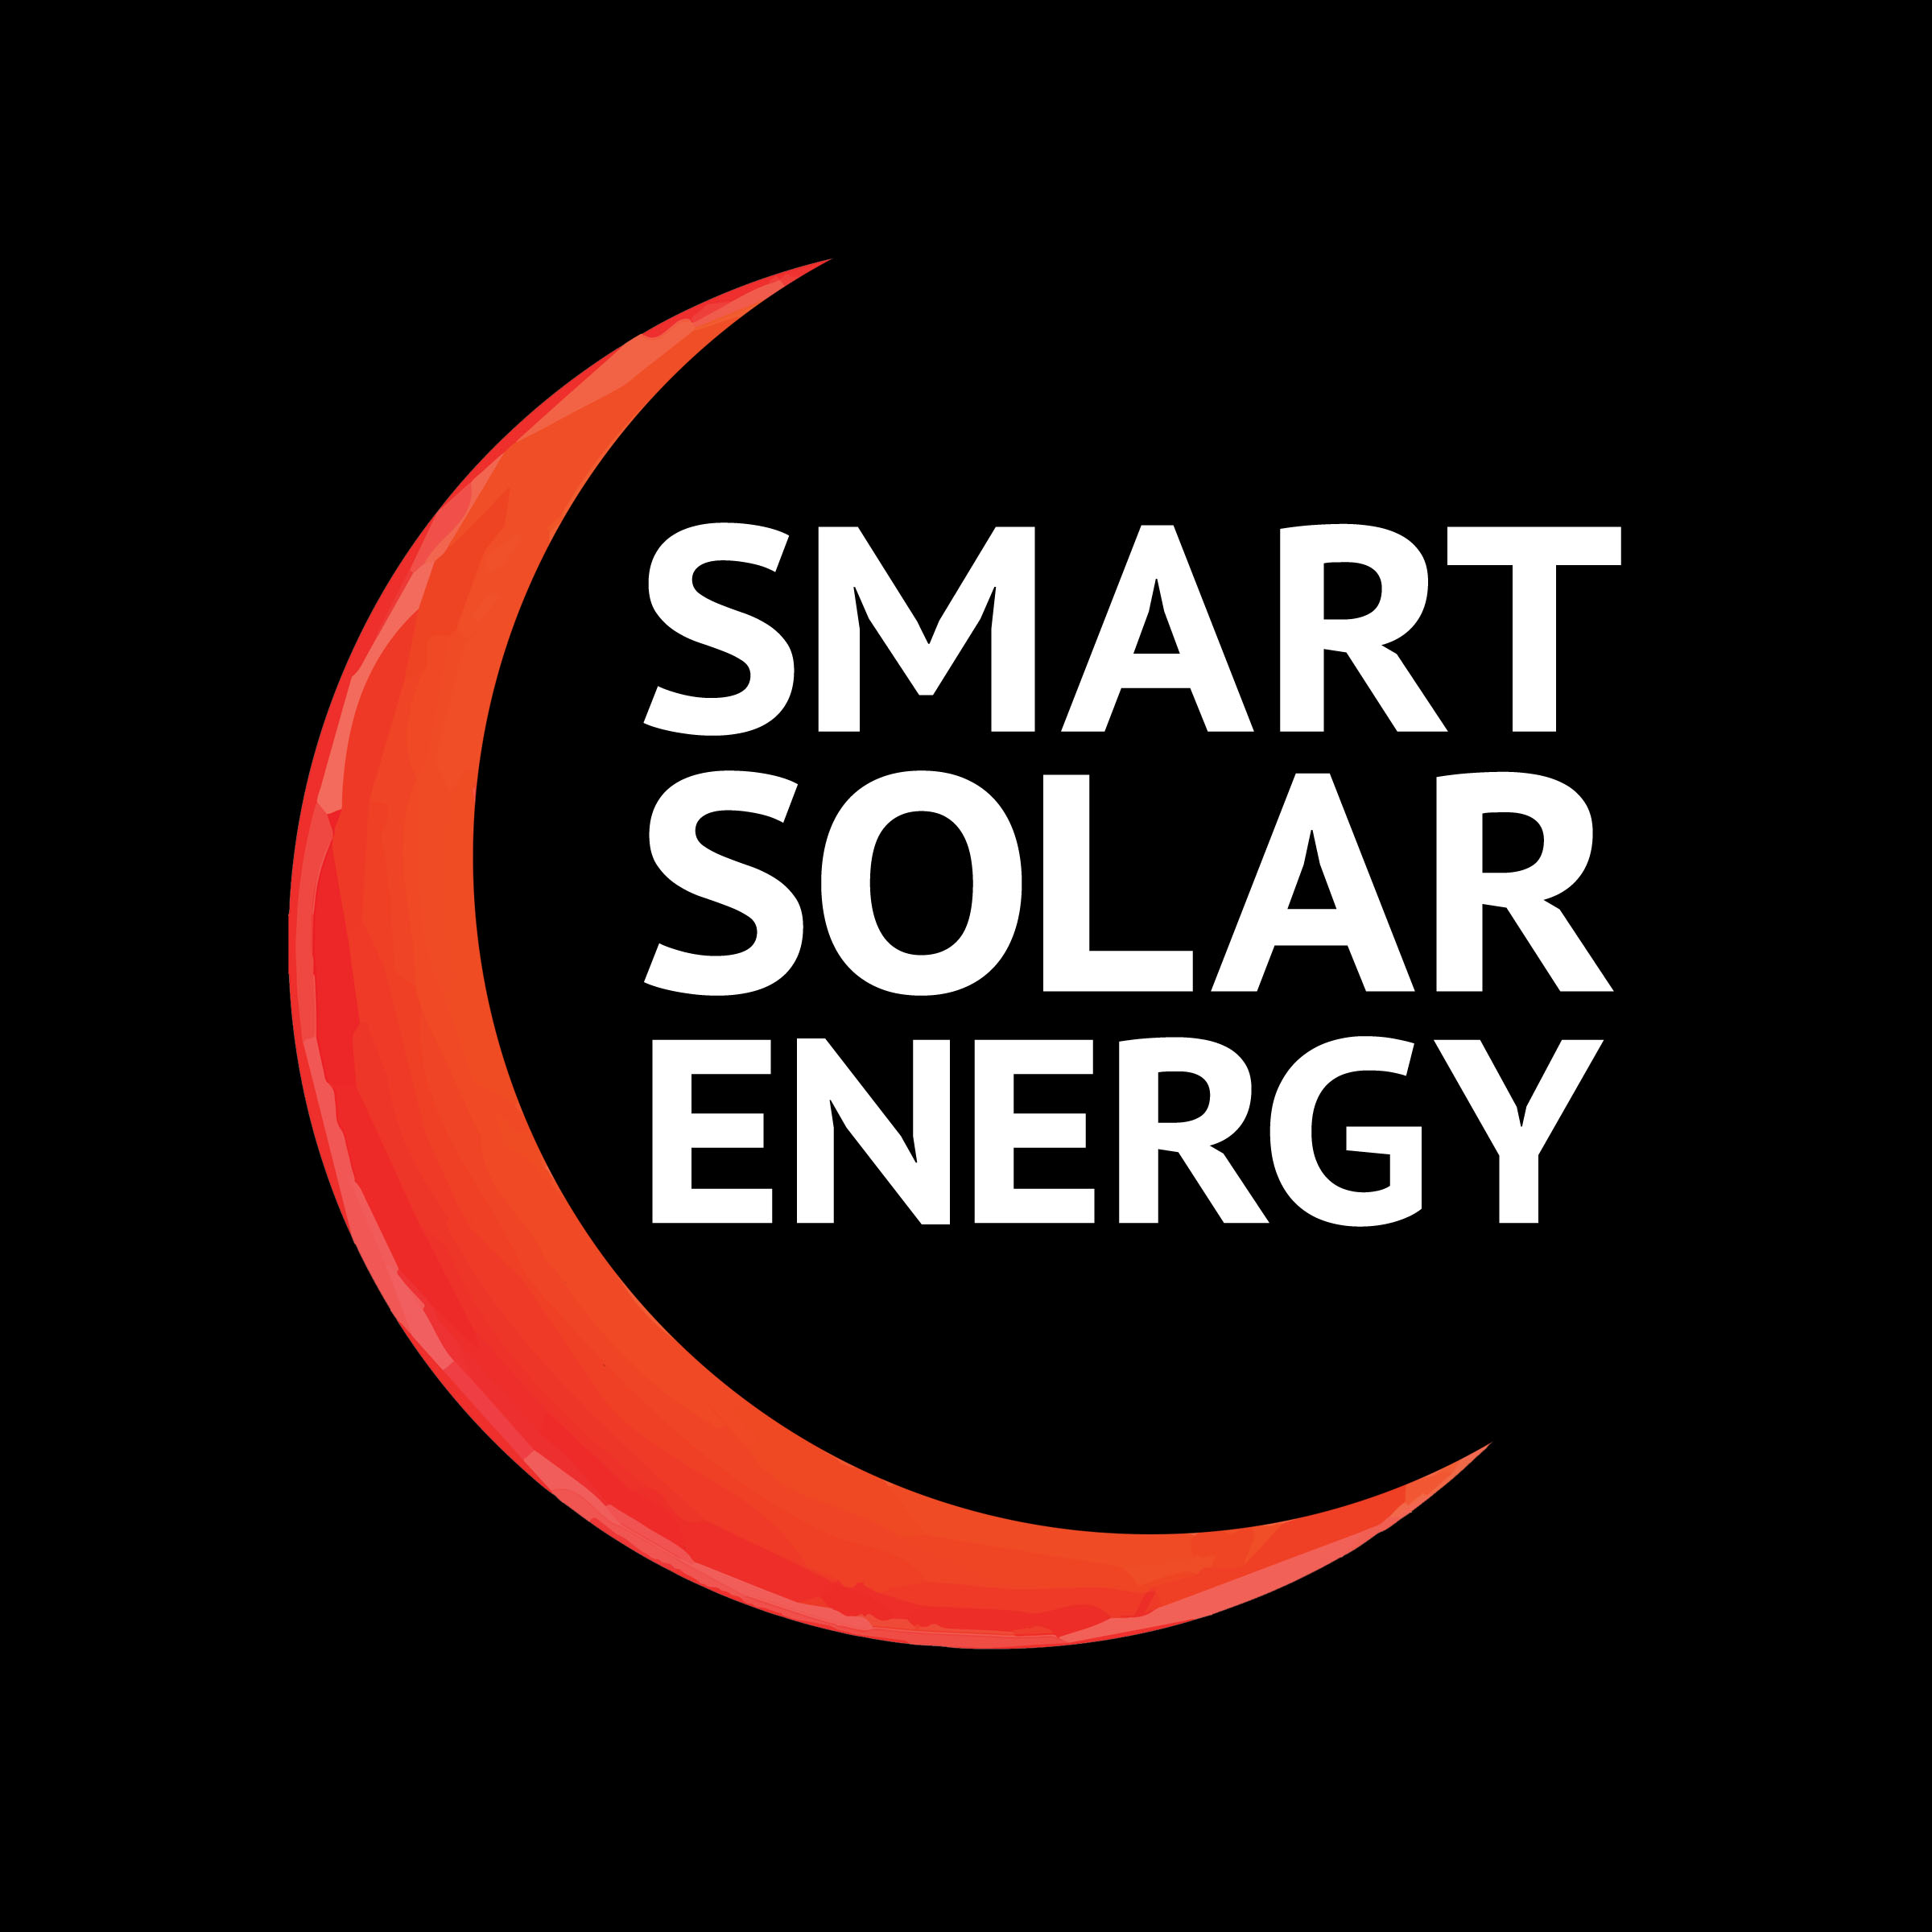 Online Scheduler For Smart Solar Energy